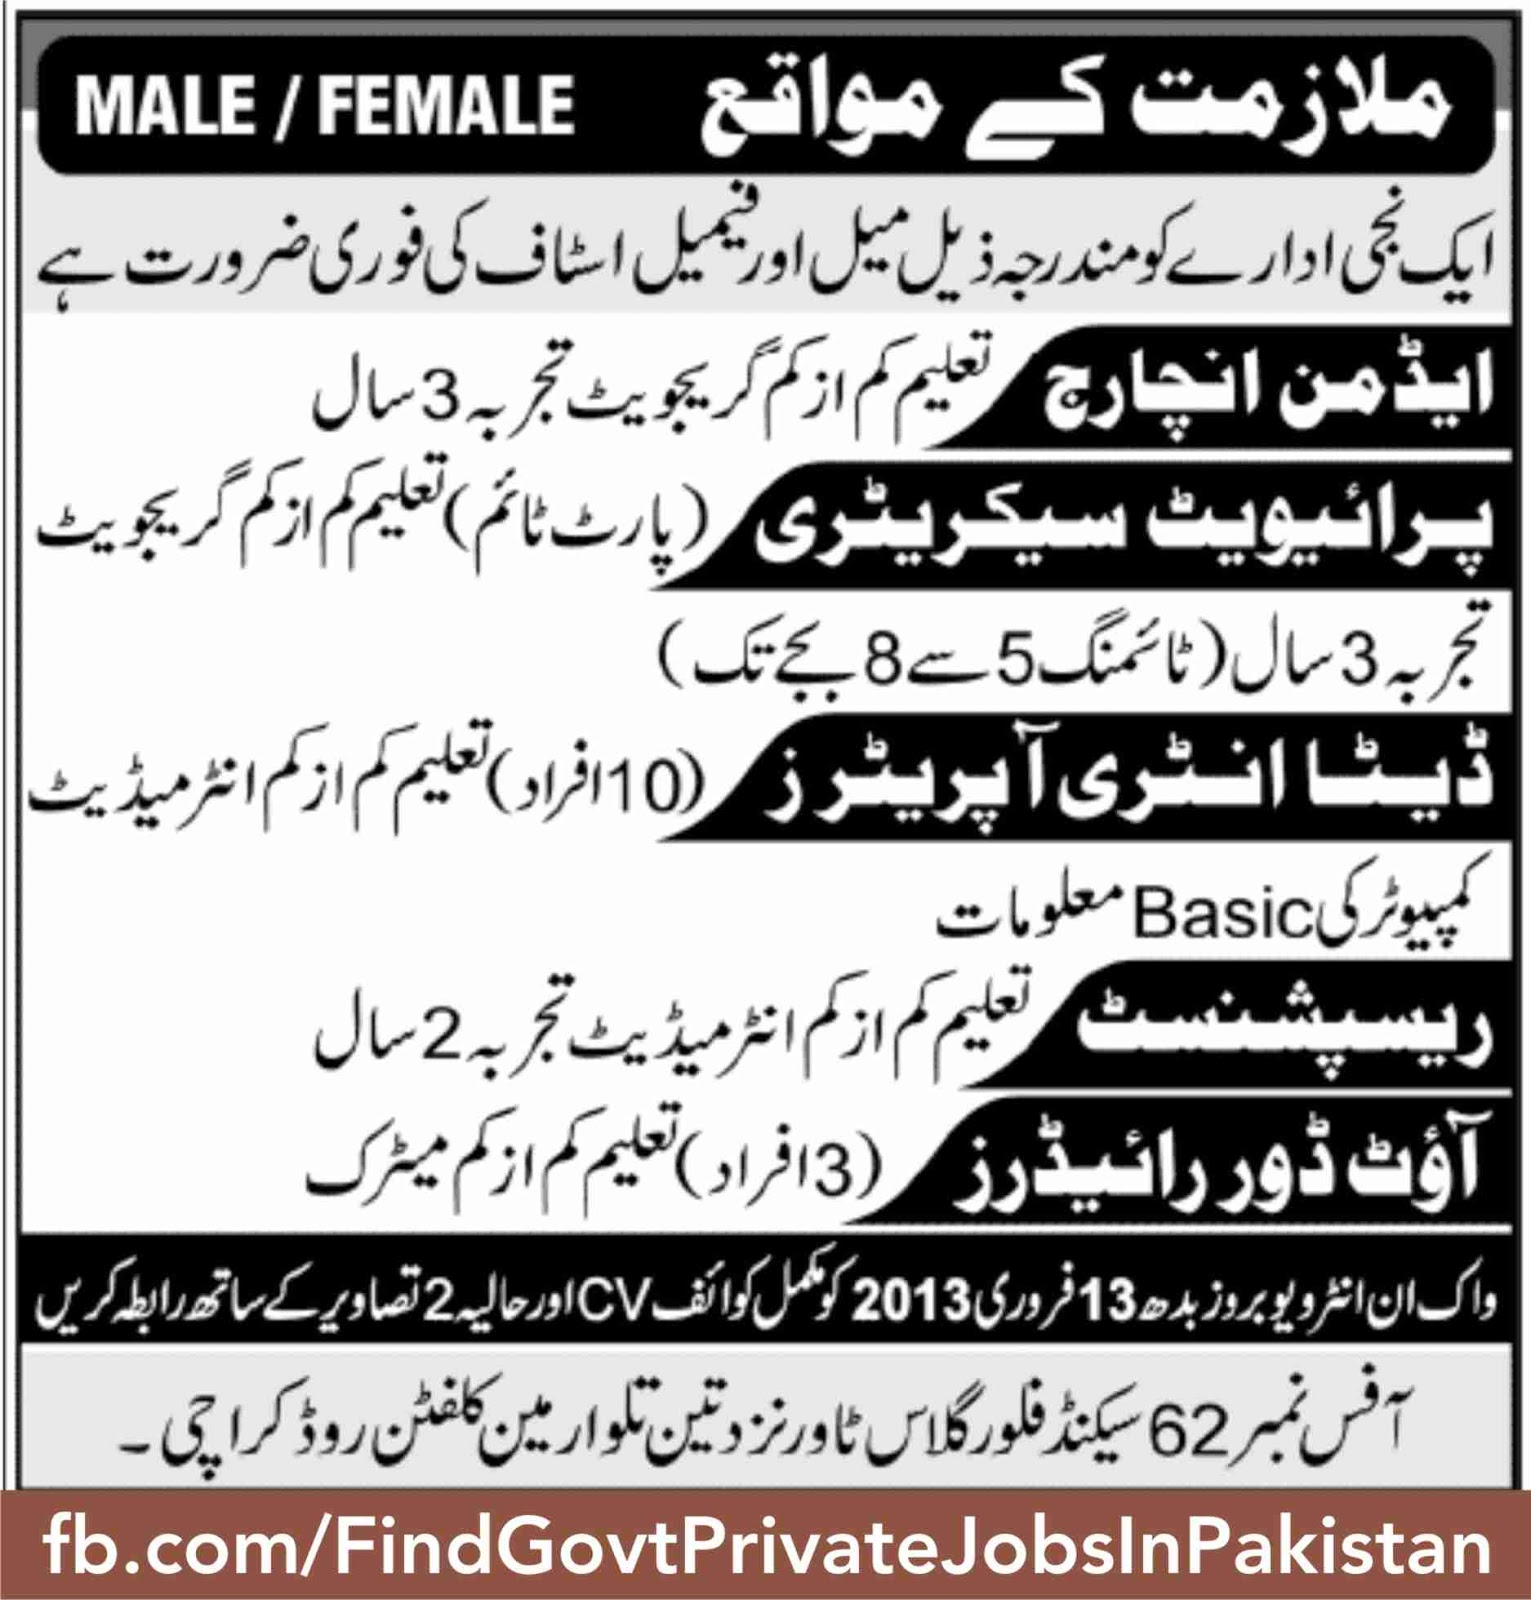 male female staff requried job ads